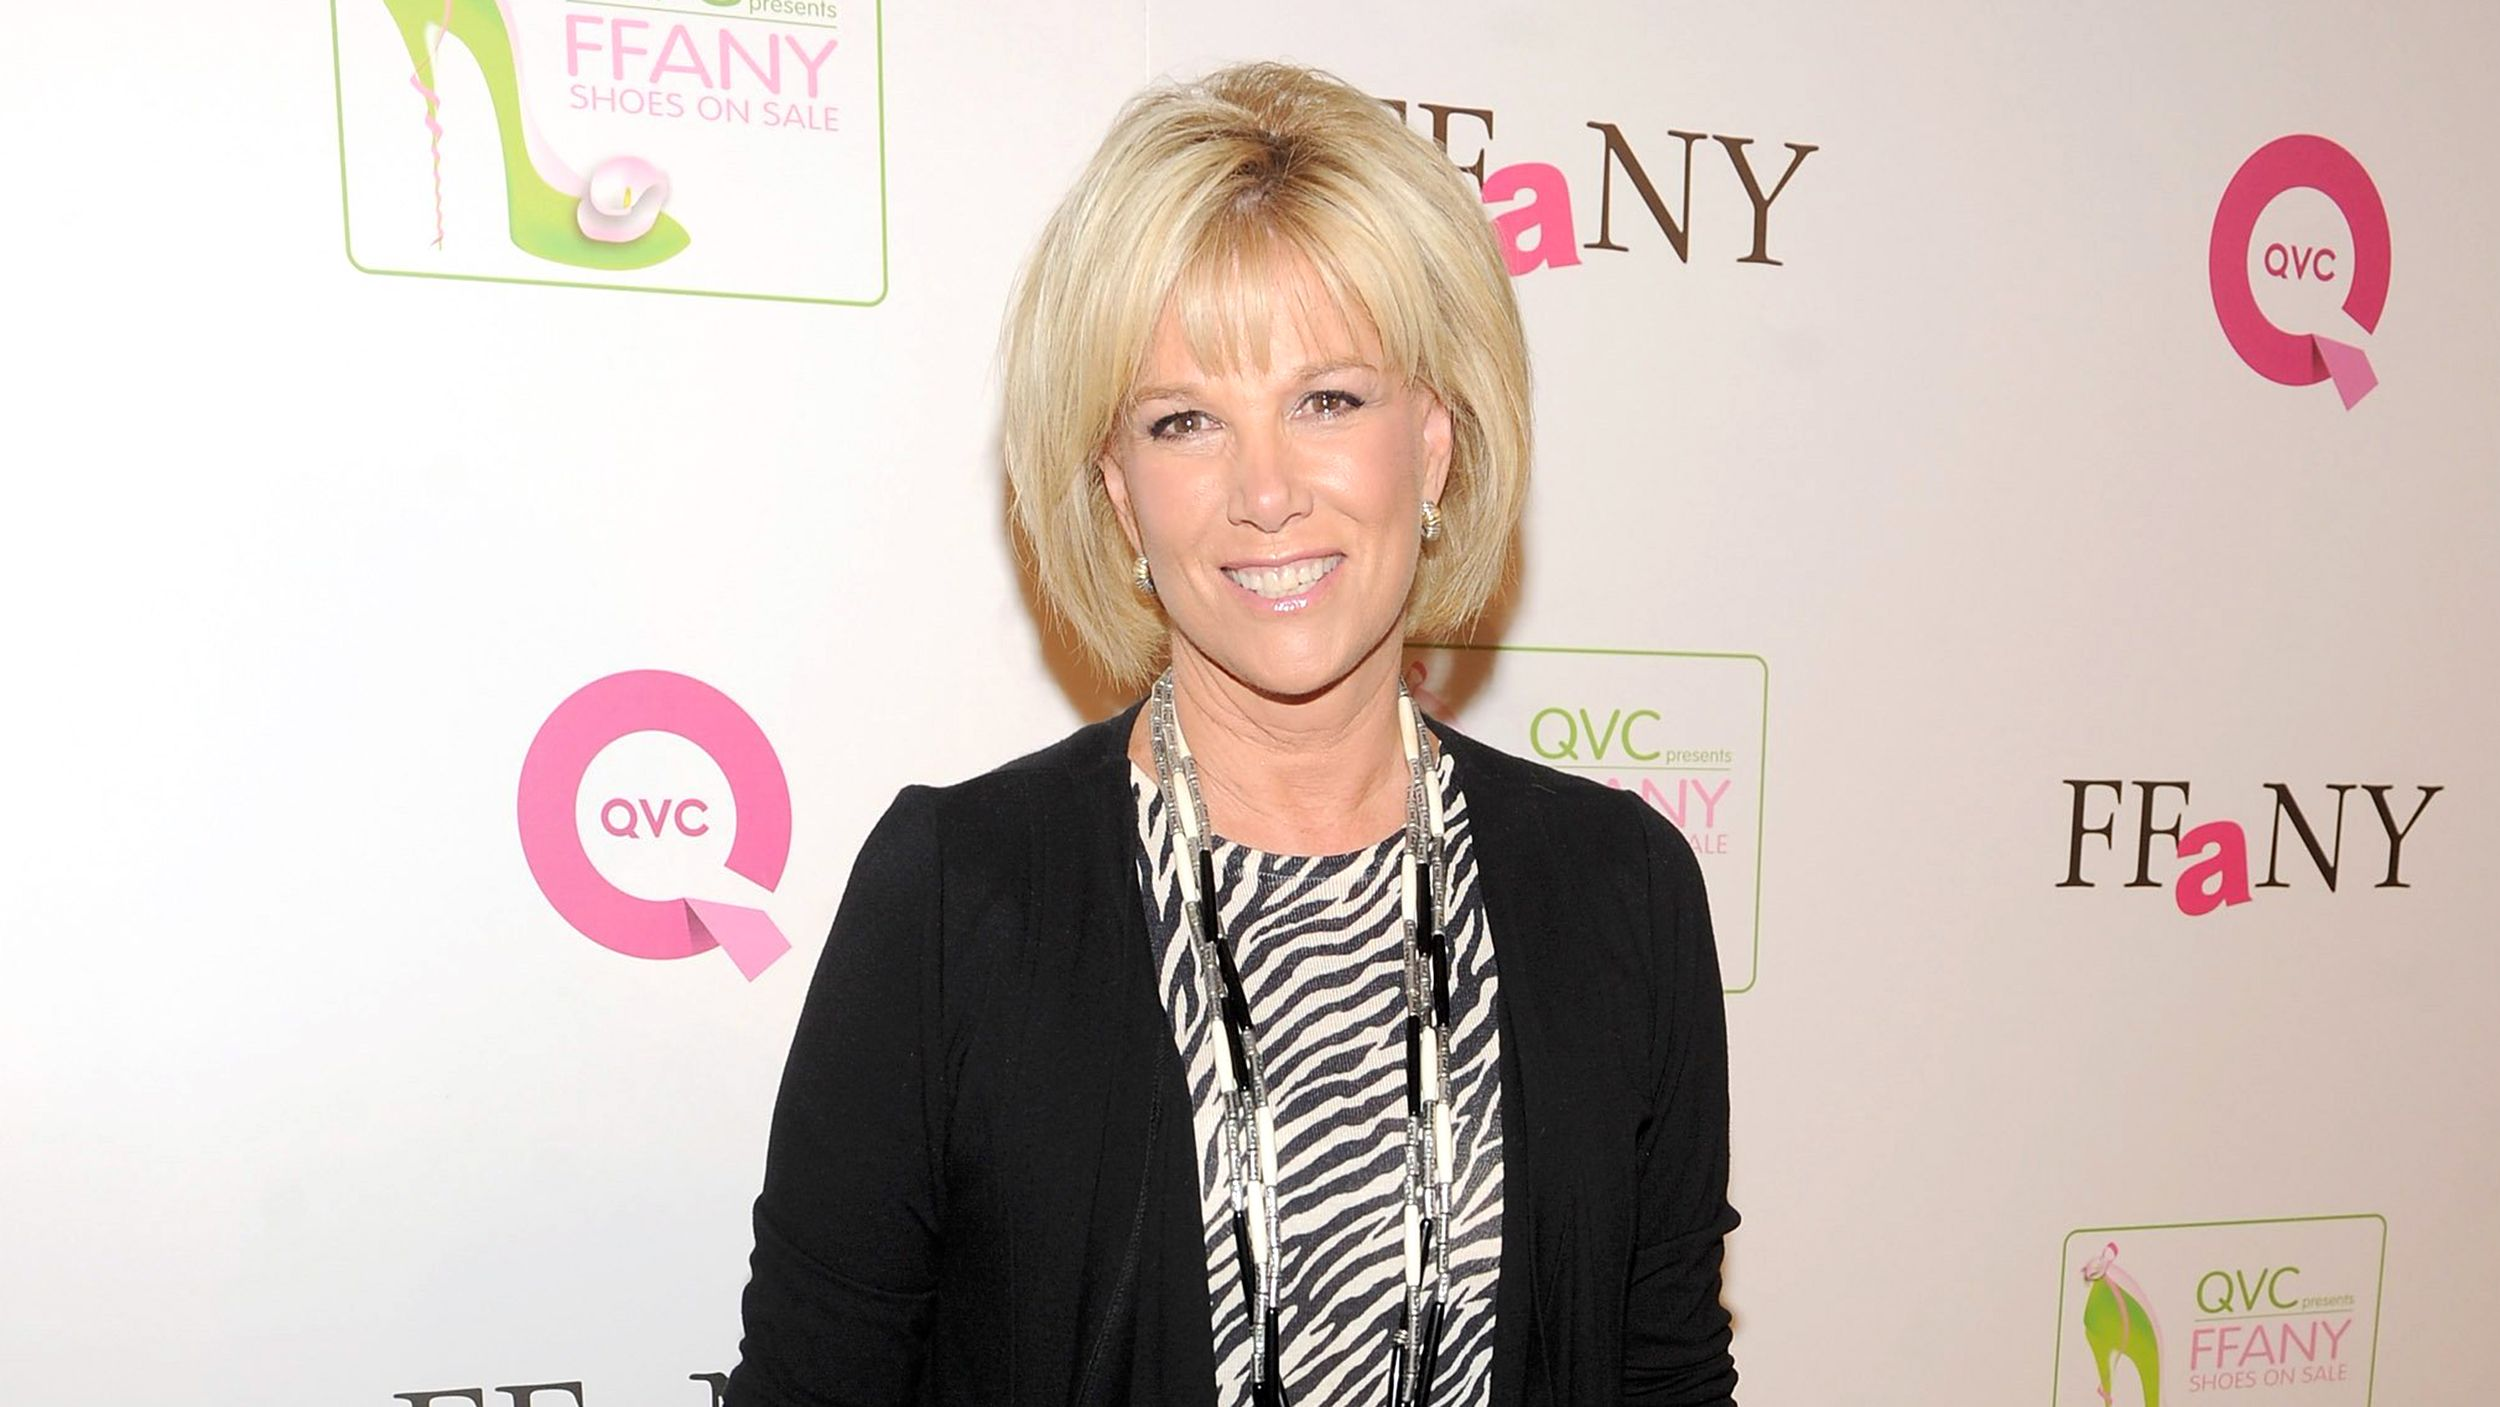 Former GMA host Joan Lunden has breast cancer